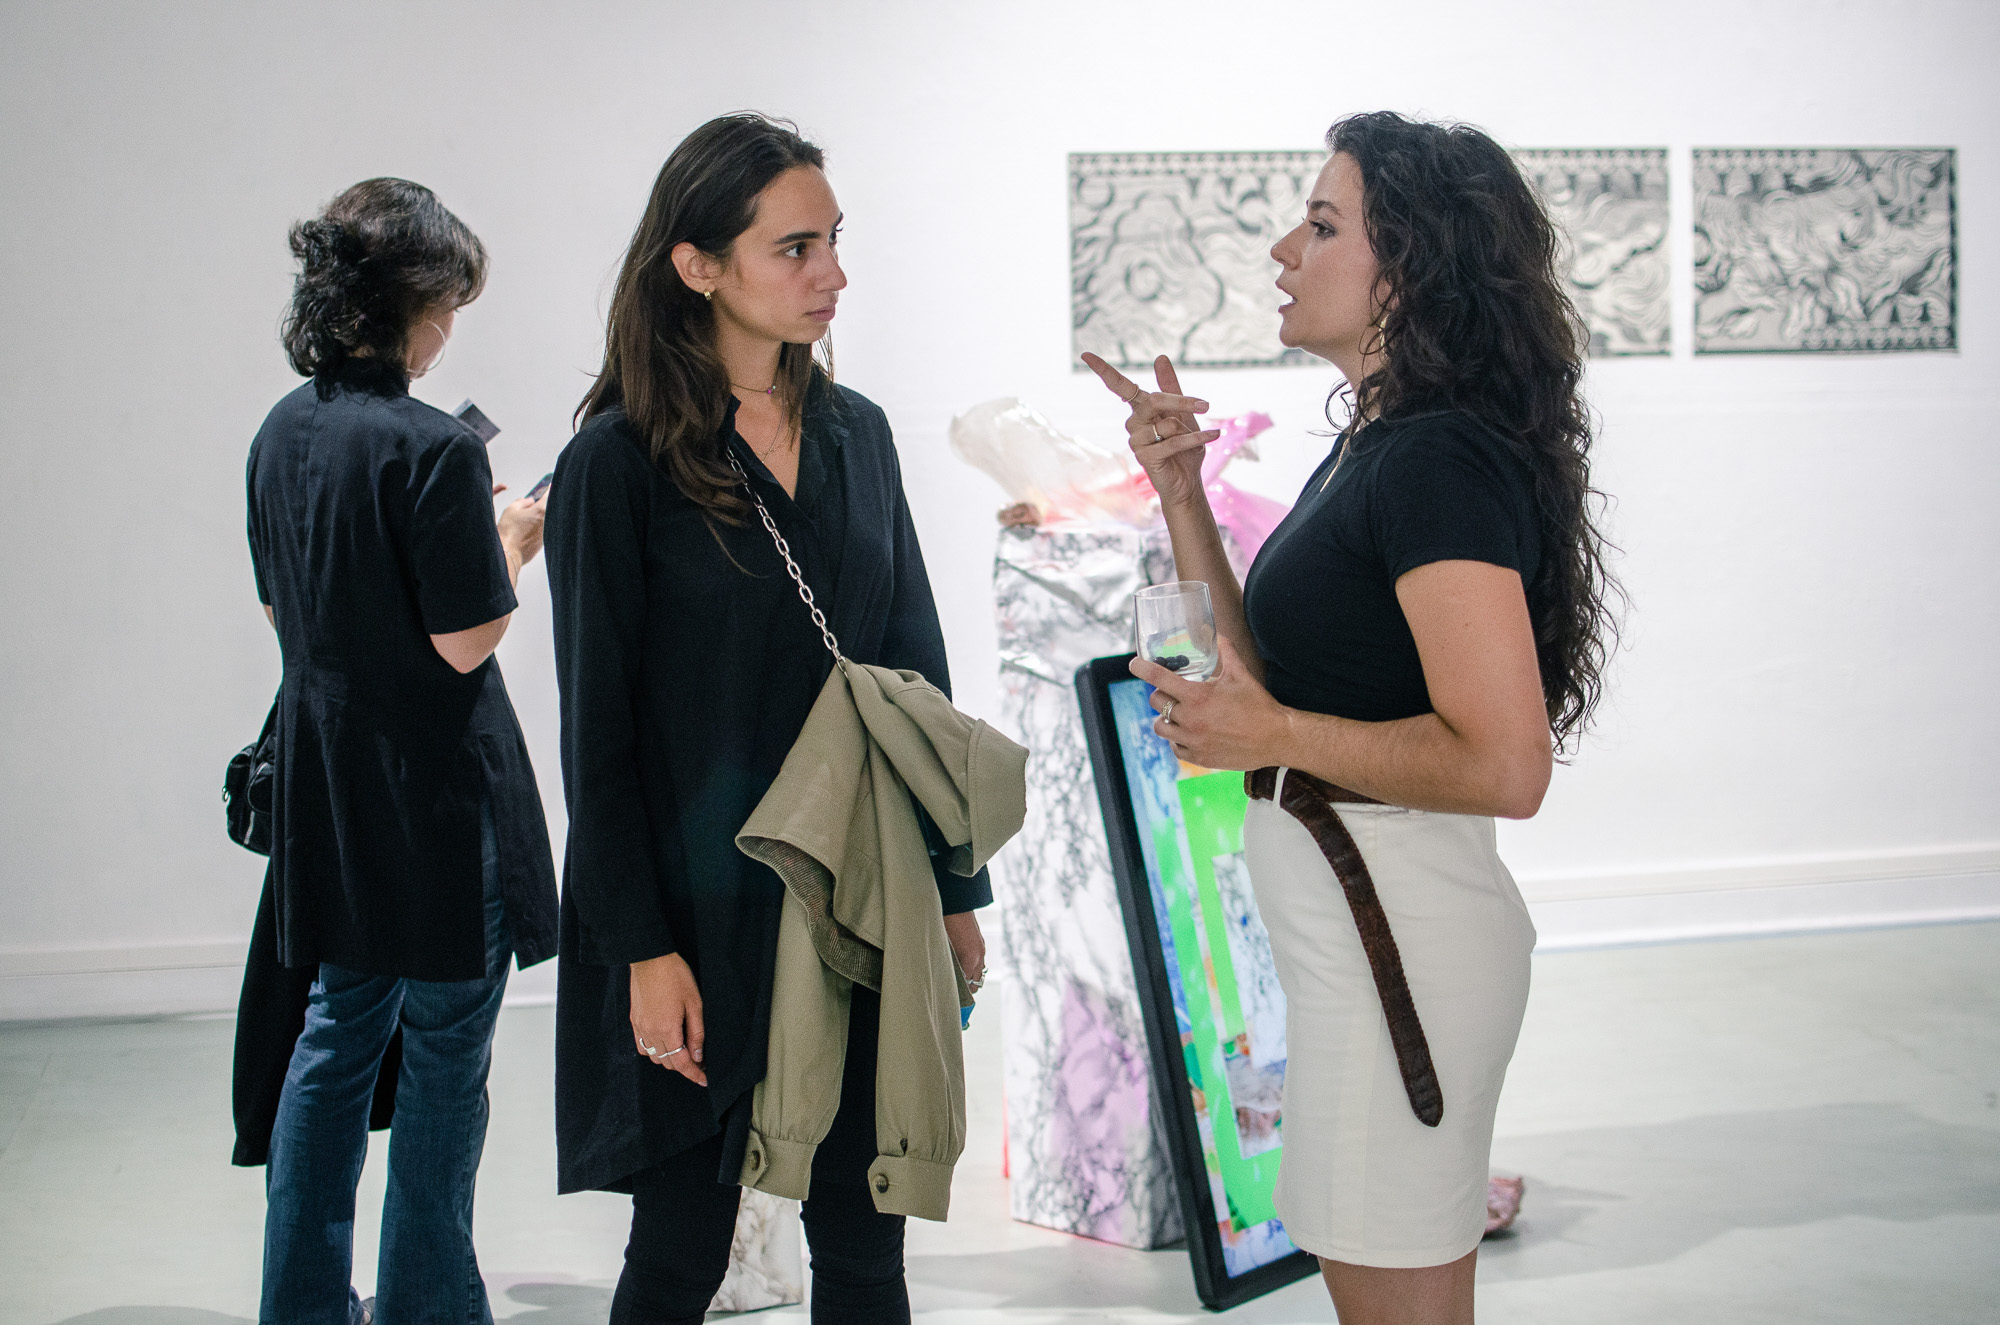 PKRD-48-Airy-Democratic-Spirituality-vernissage-PK-at-Alte-Handlesschule-20.08.21-Fanni-Papp-for-PK-18